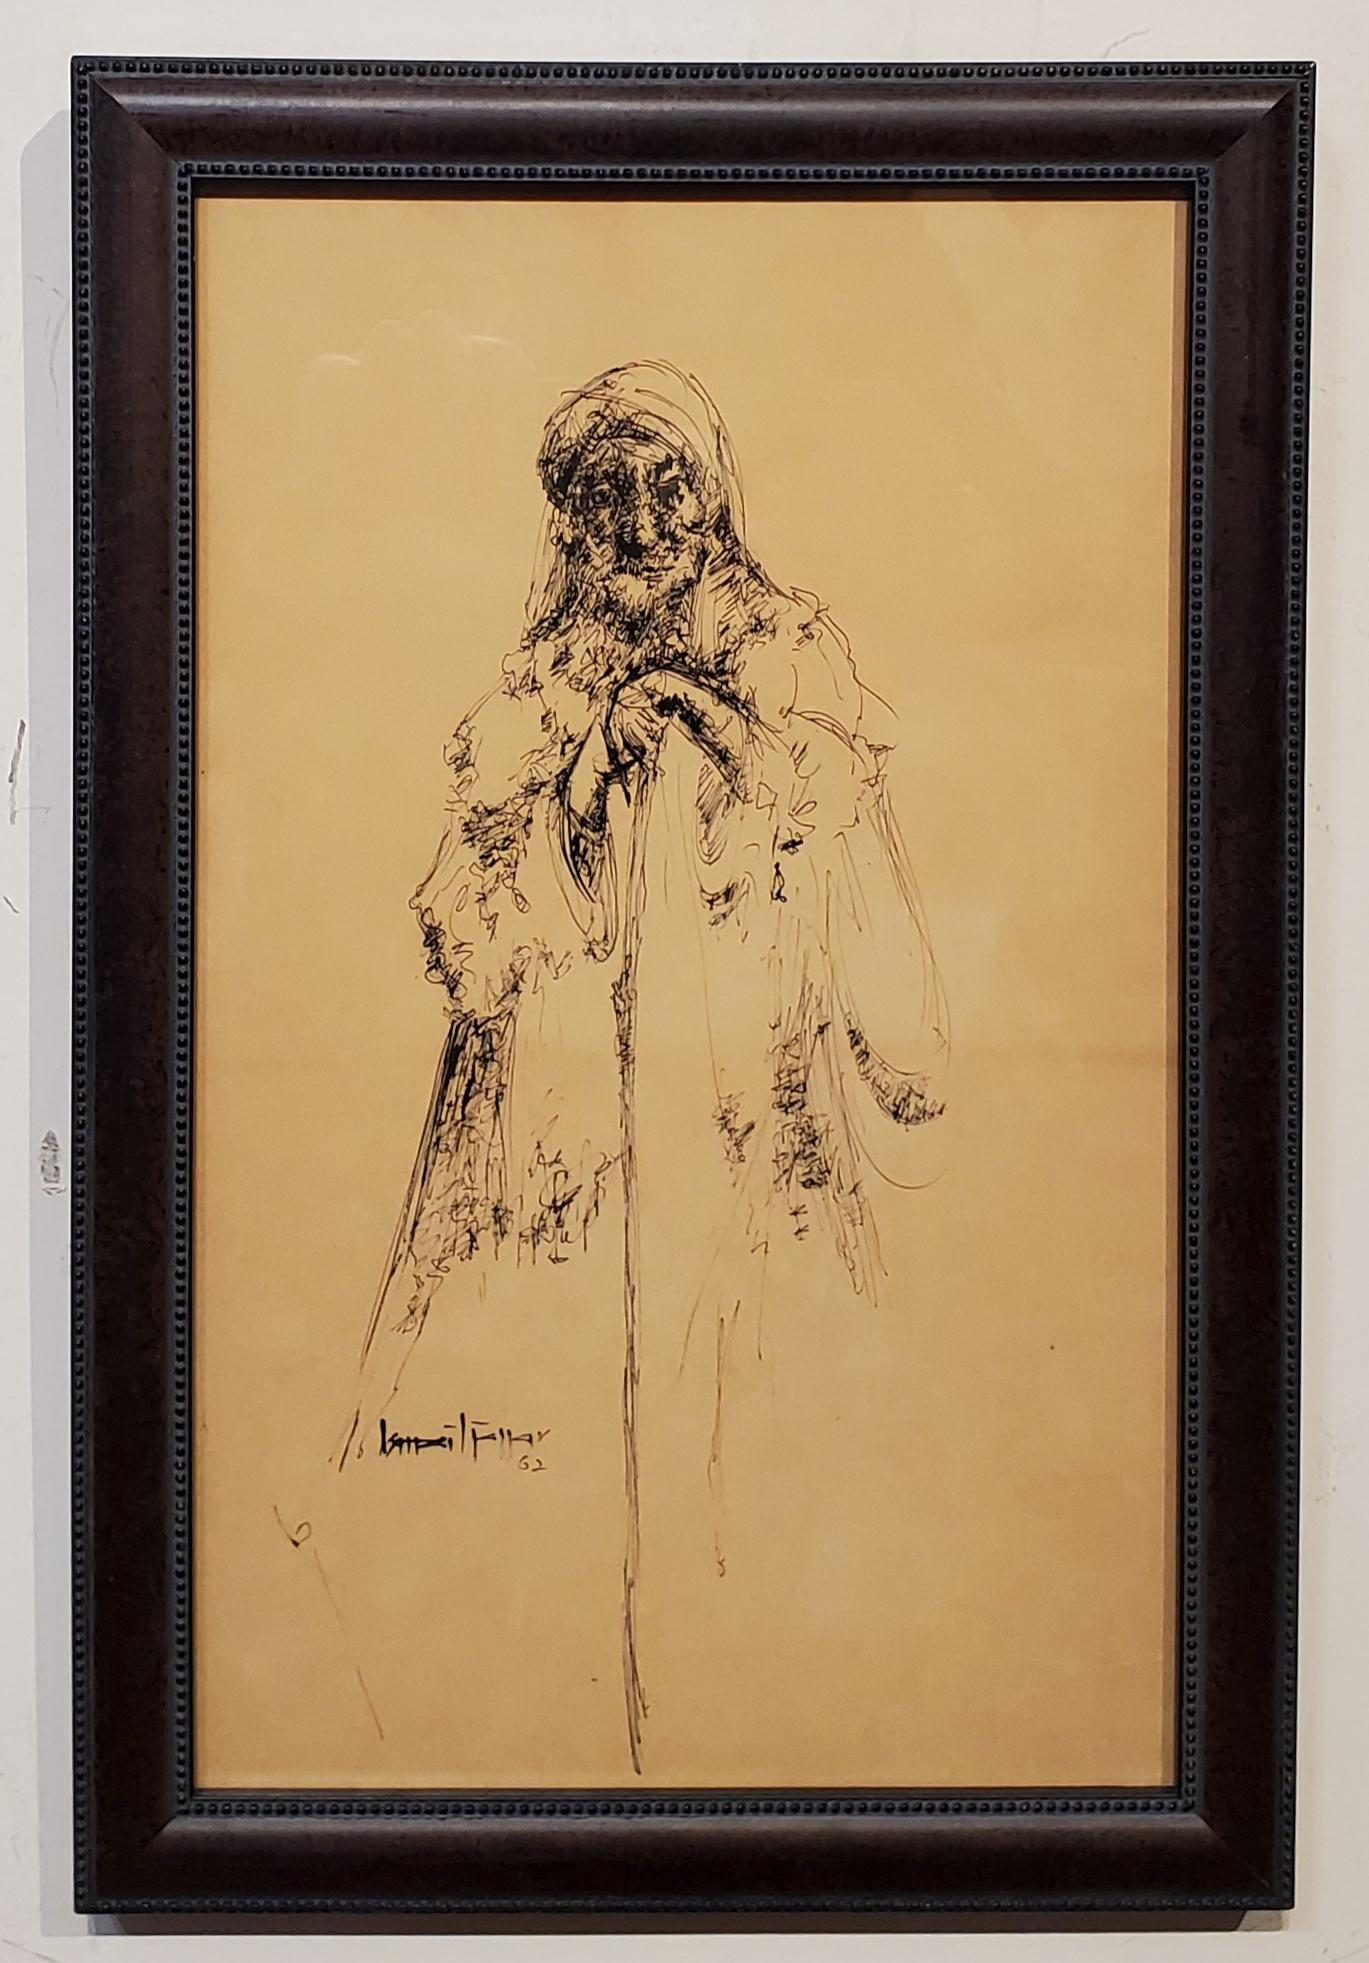 Ink Drawing of a Peasant Holding a Cane, dated '62